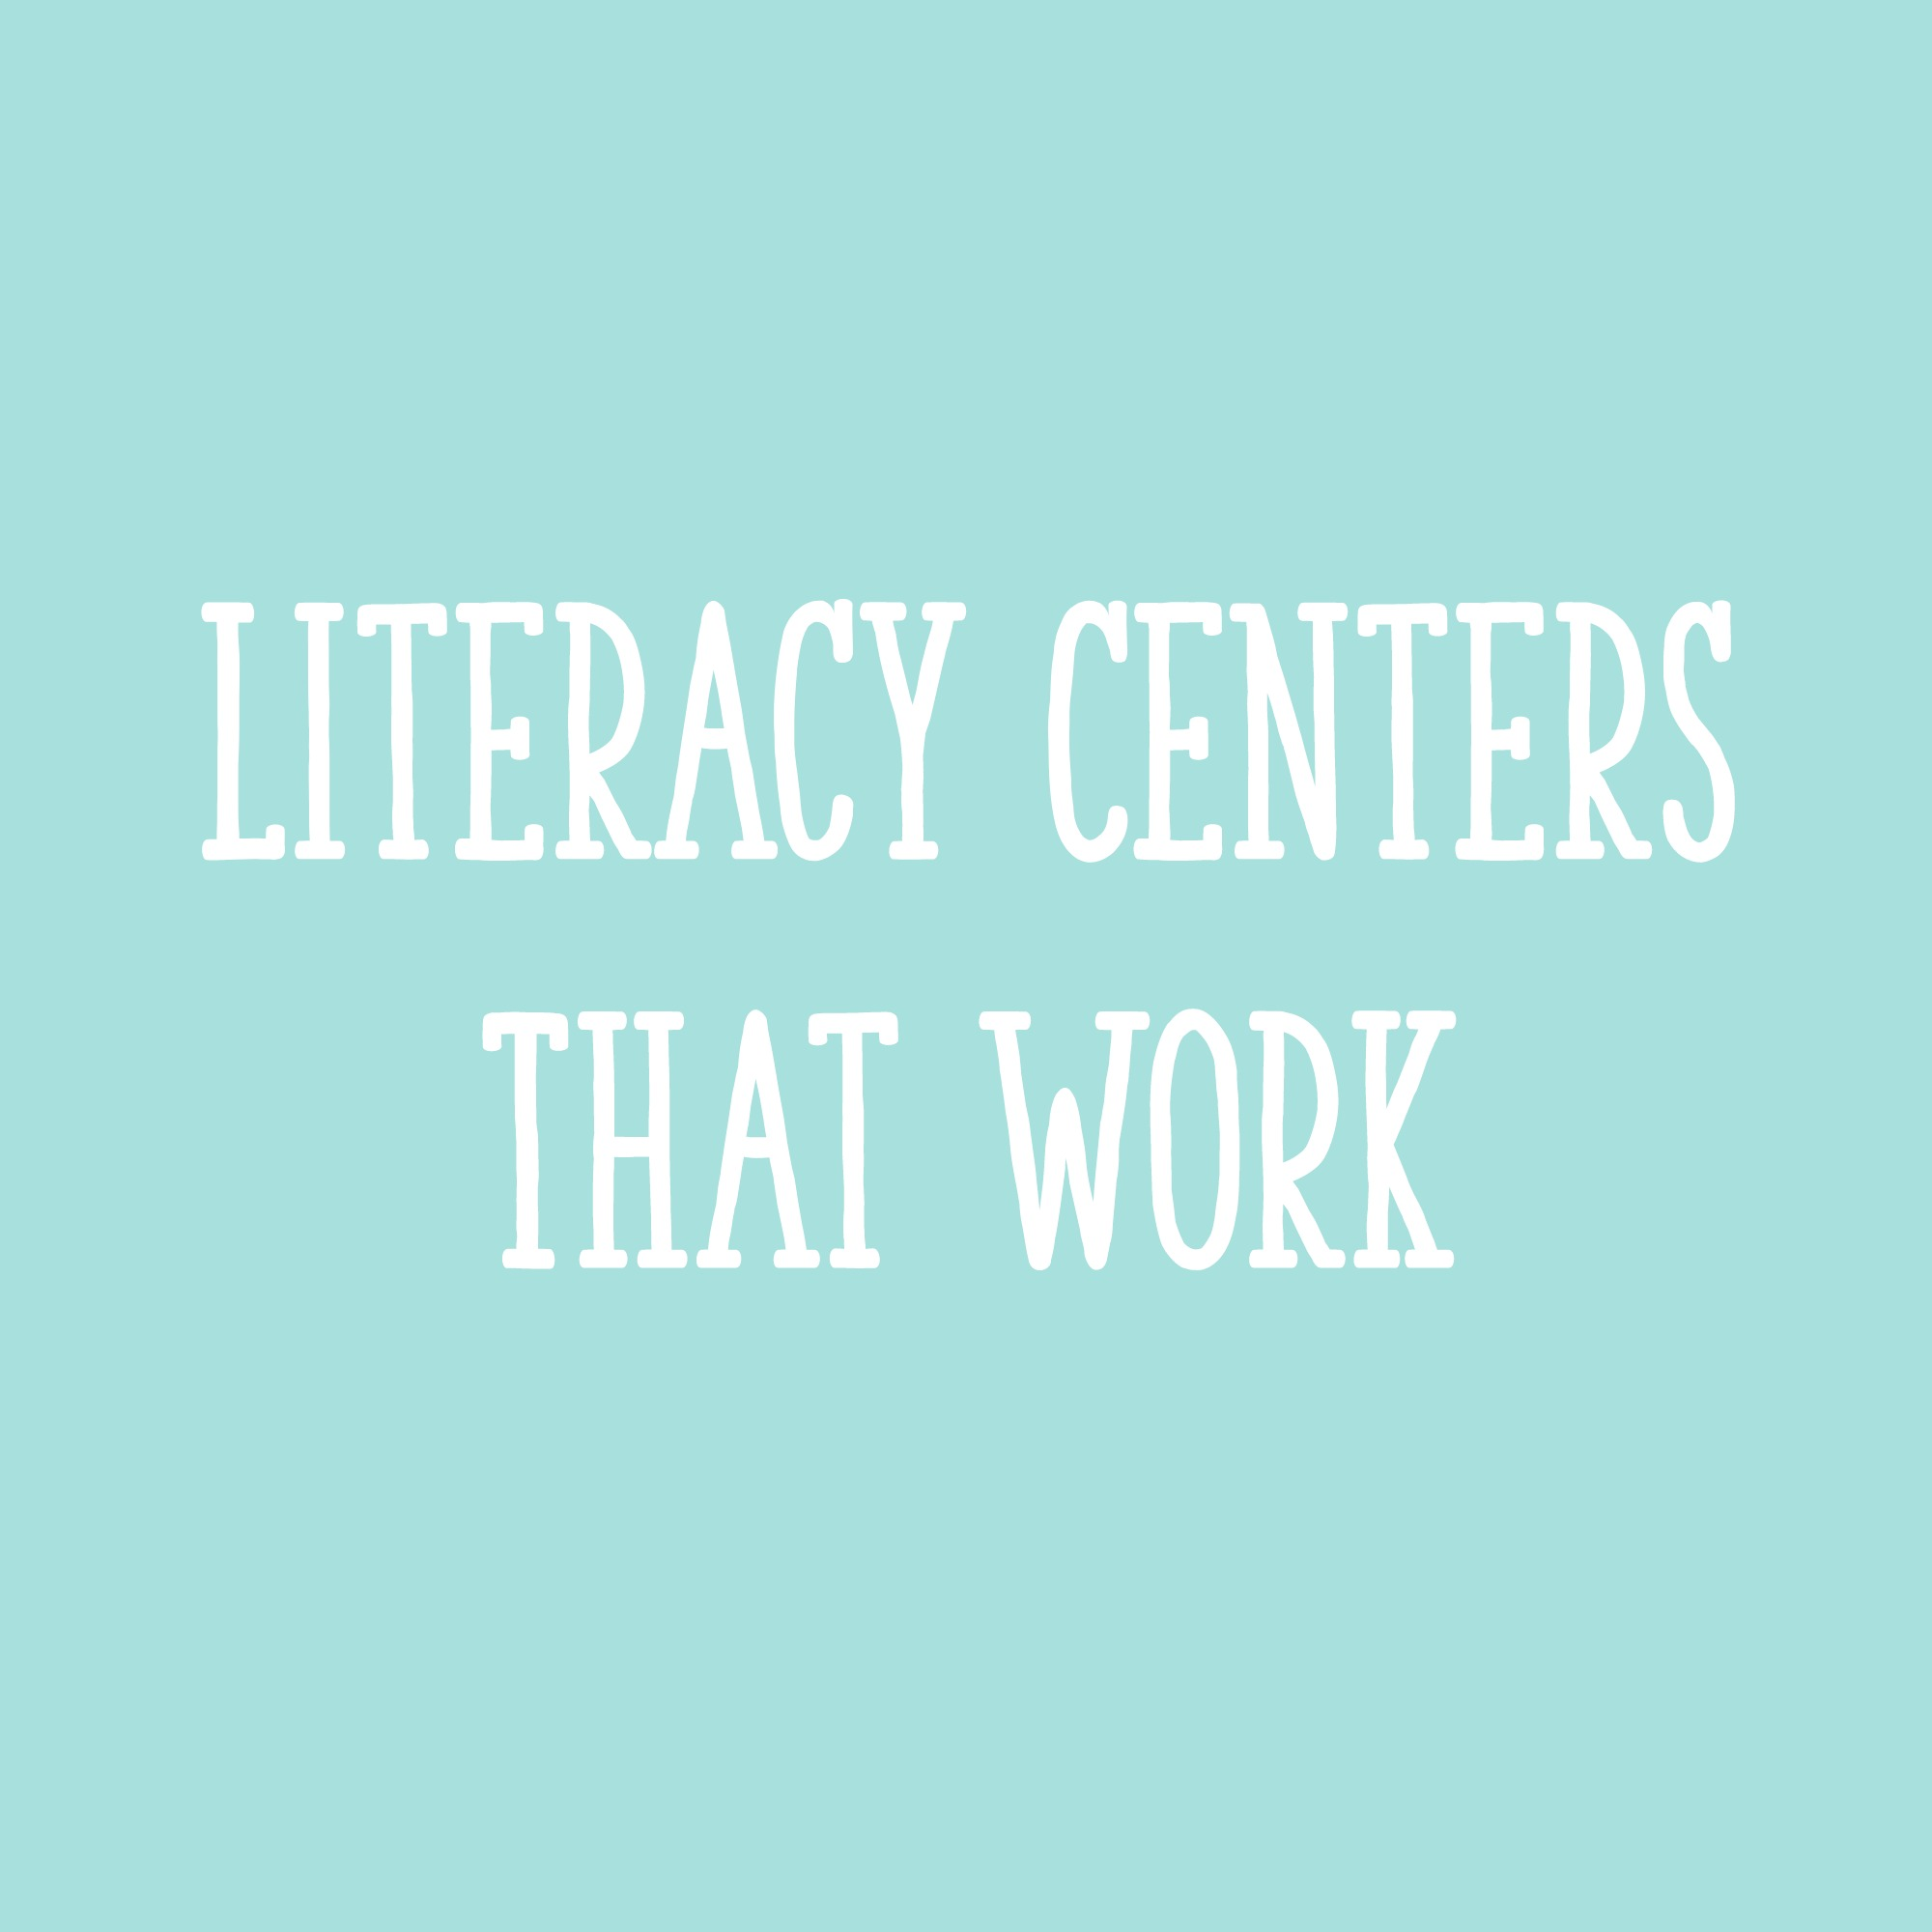 image regarding Printable Literacy Centers First Grade known as Literacy Facilities That Effort - Understanding at the Main Pond